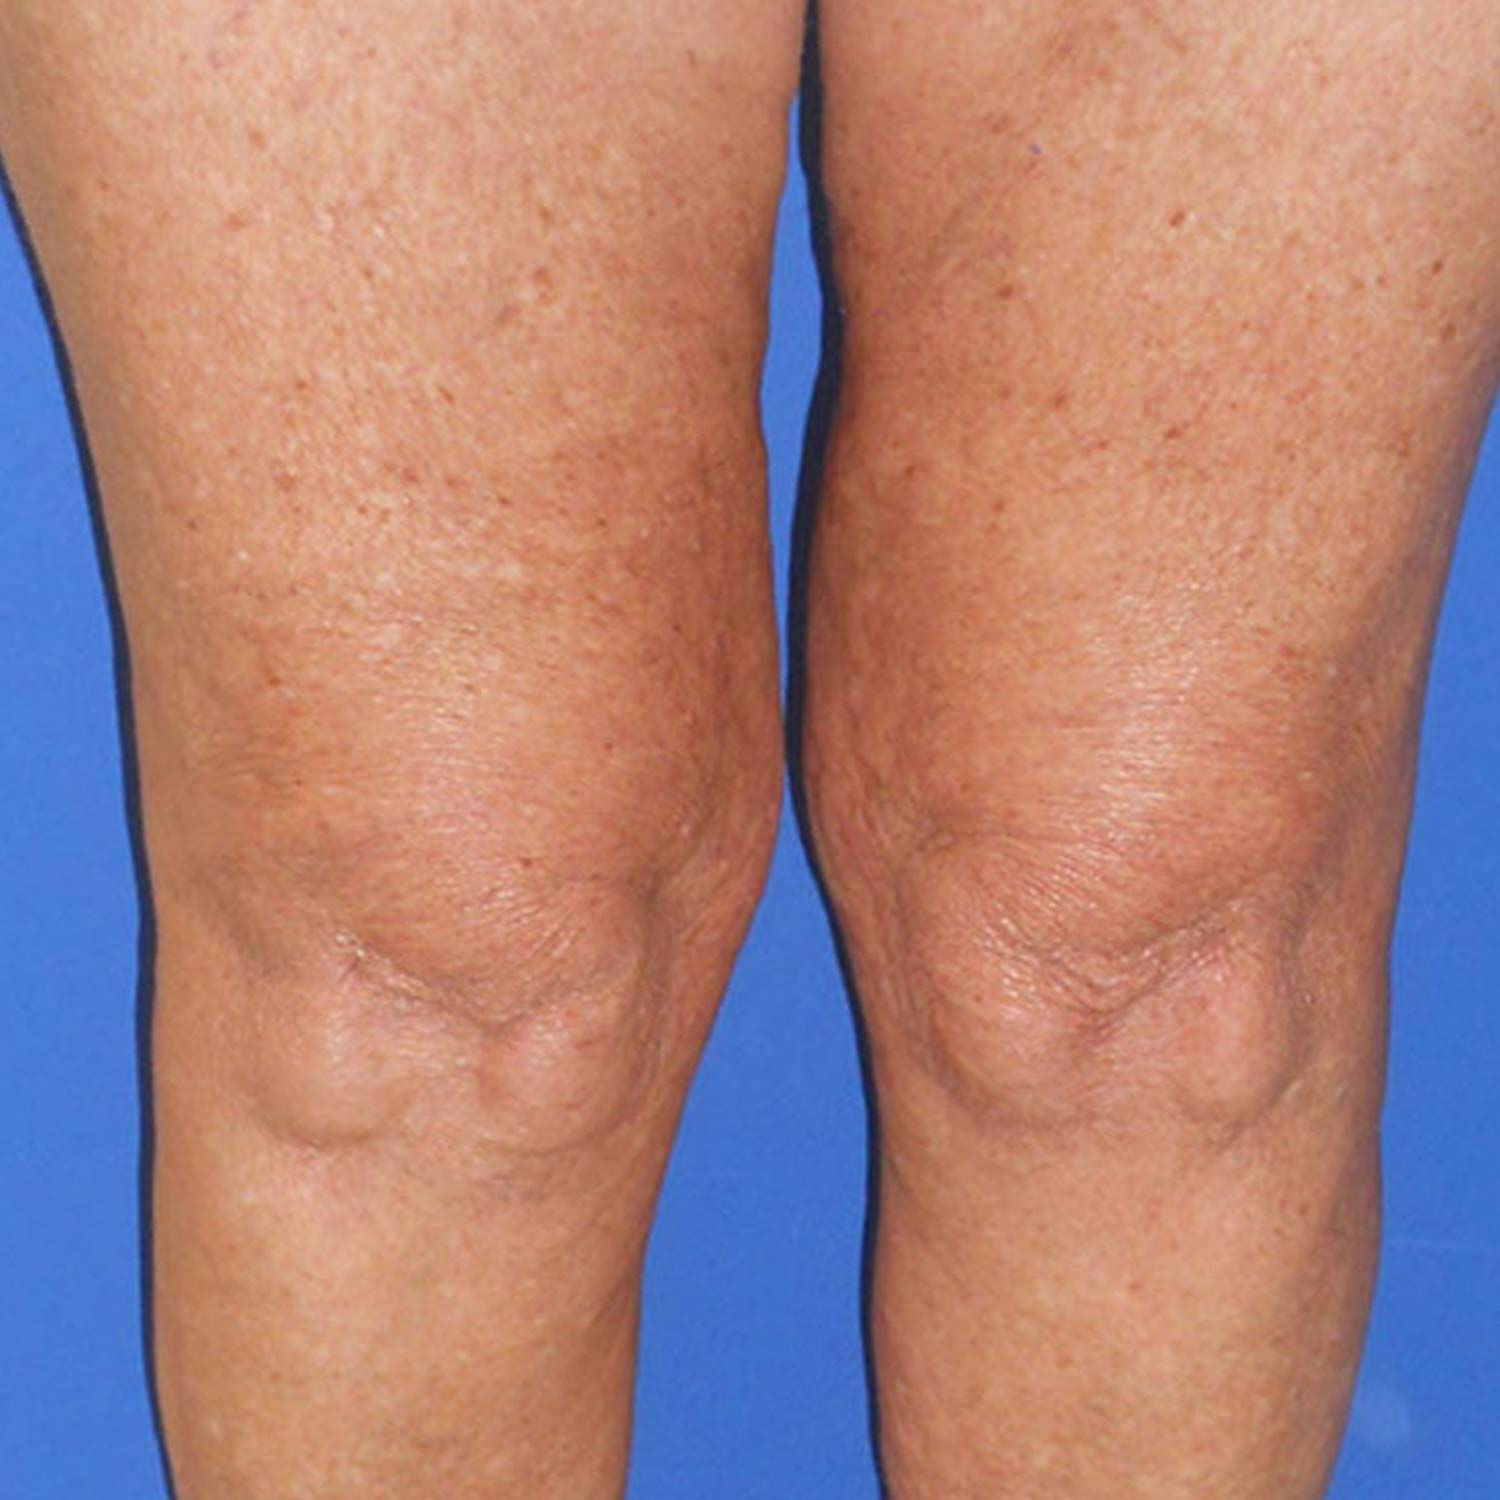 Spider veins on a patients legs are gone after surgery.